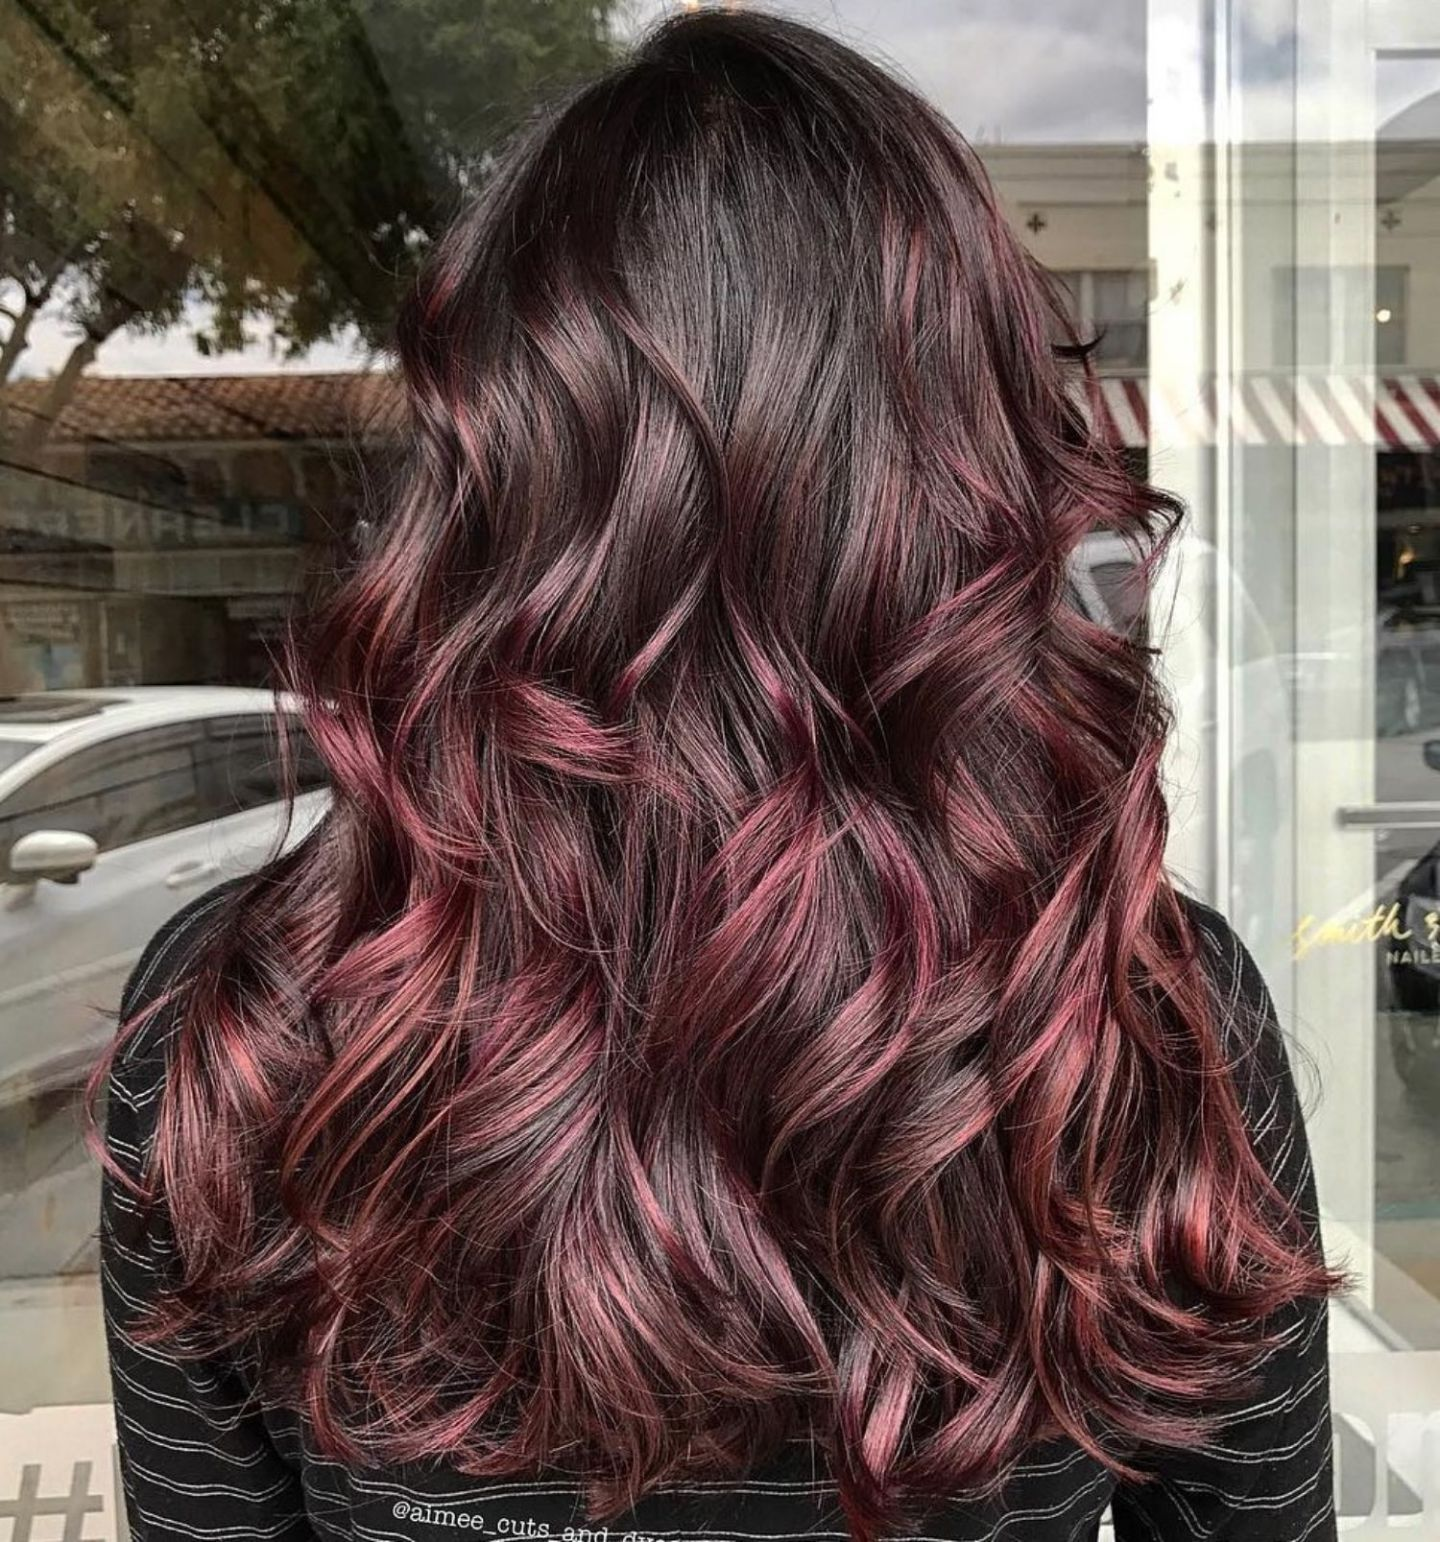 45 Shades Of Burgundy Hair Dark Burgundy Maroon Burgundy With Red Purple And Brown Highlights Fall Hair Color For Brunettes Burgundy Brown Hair Burgundy Hair